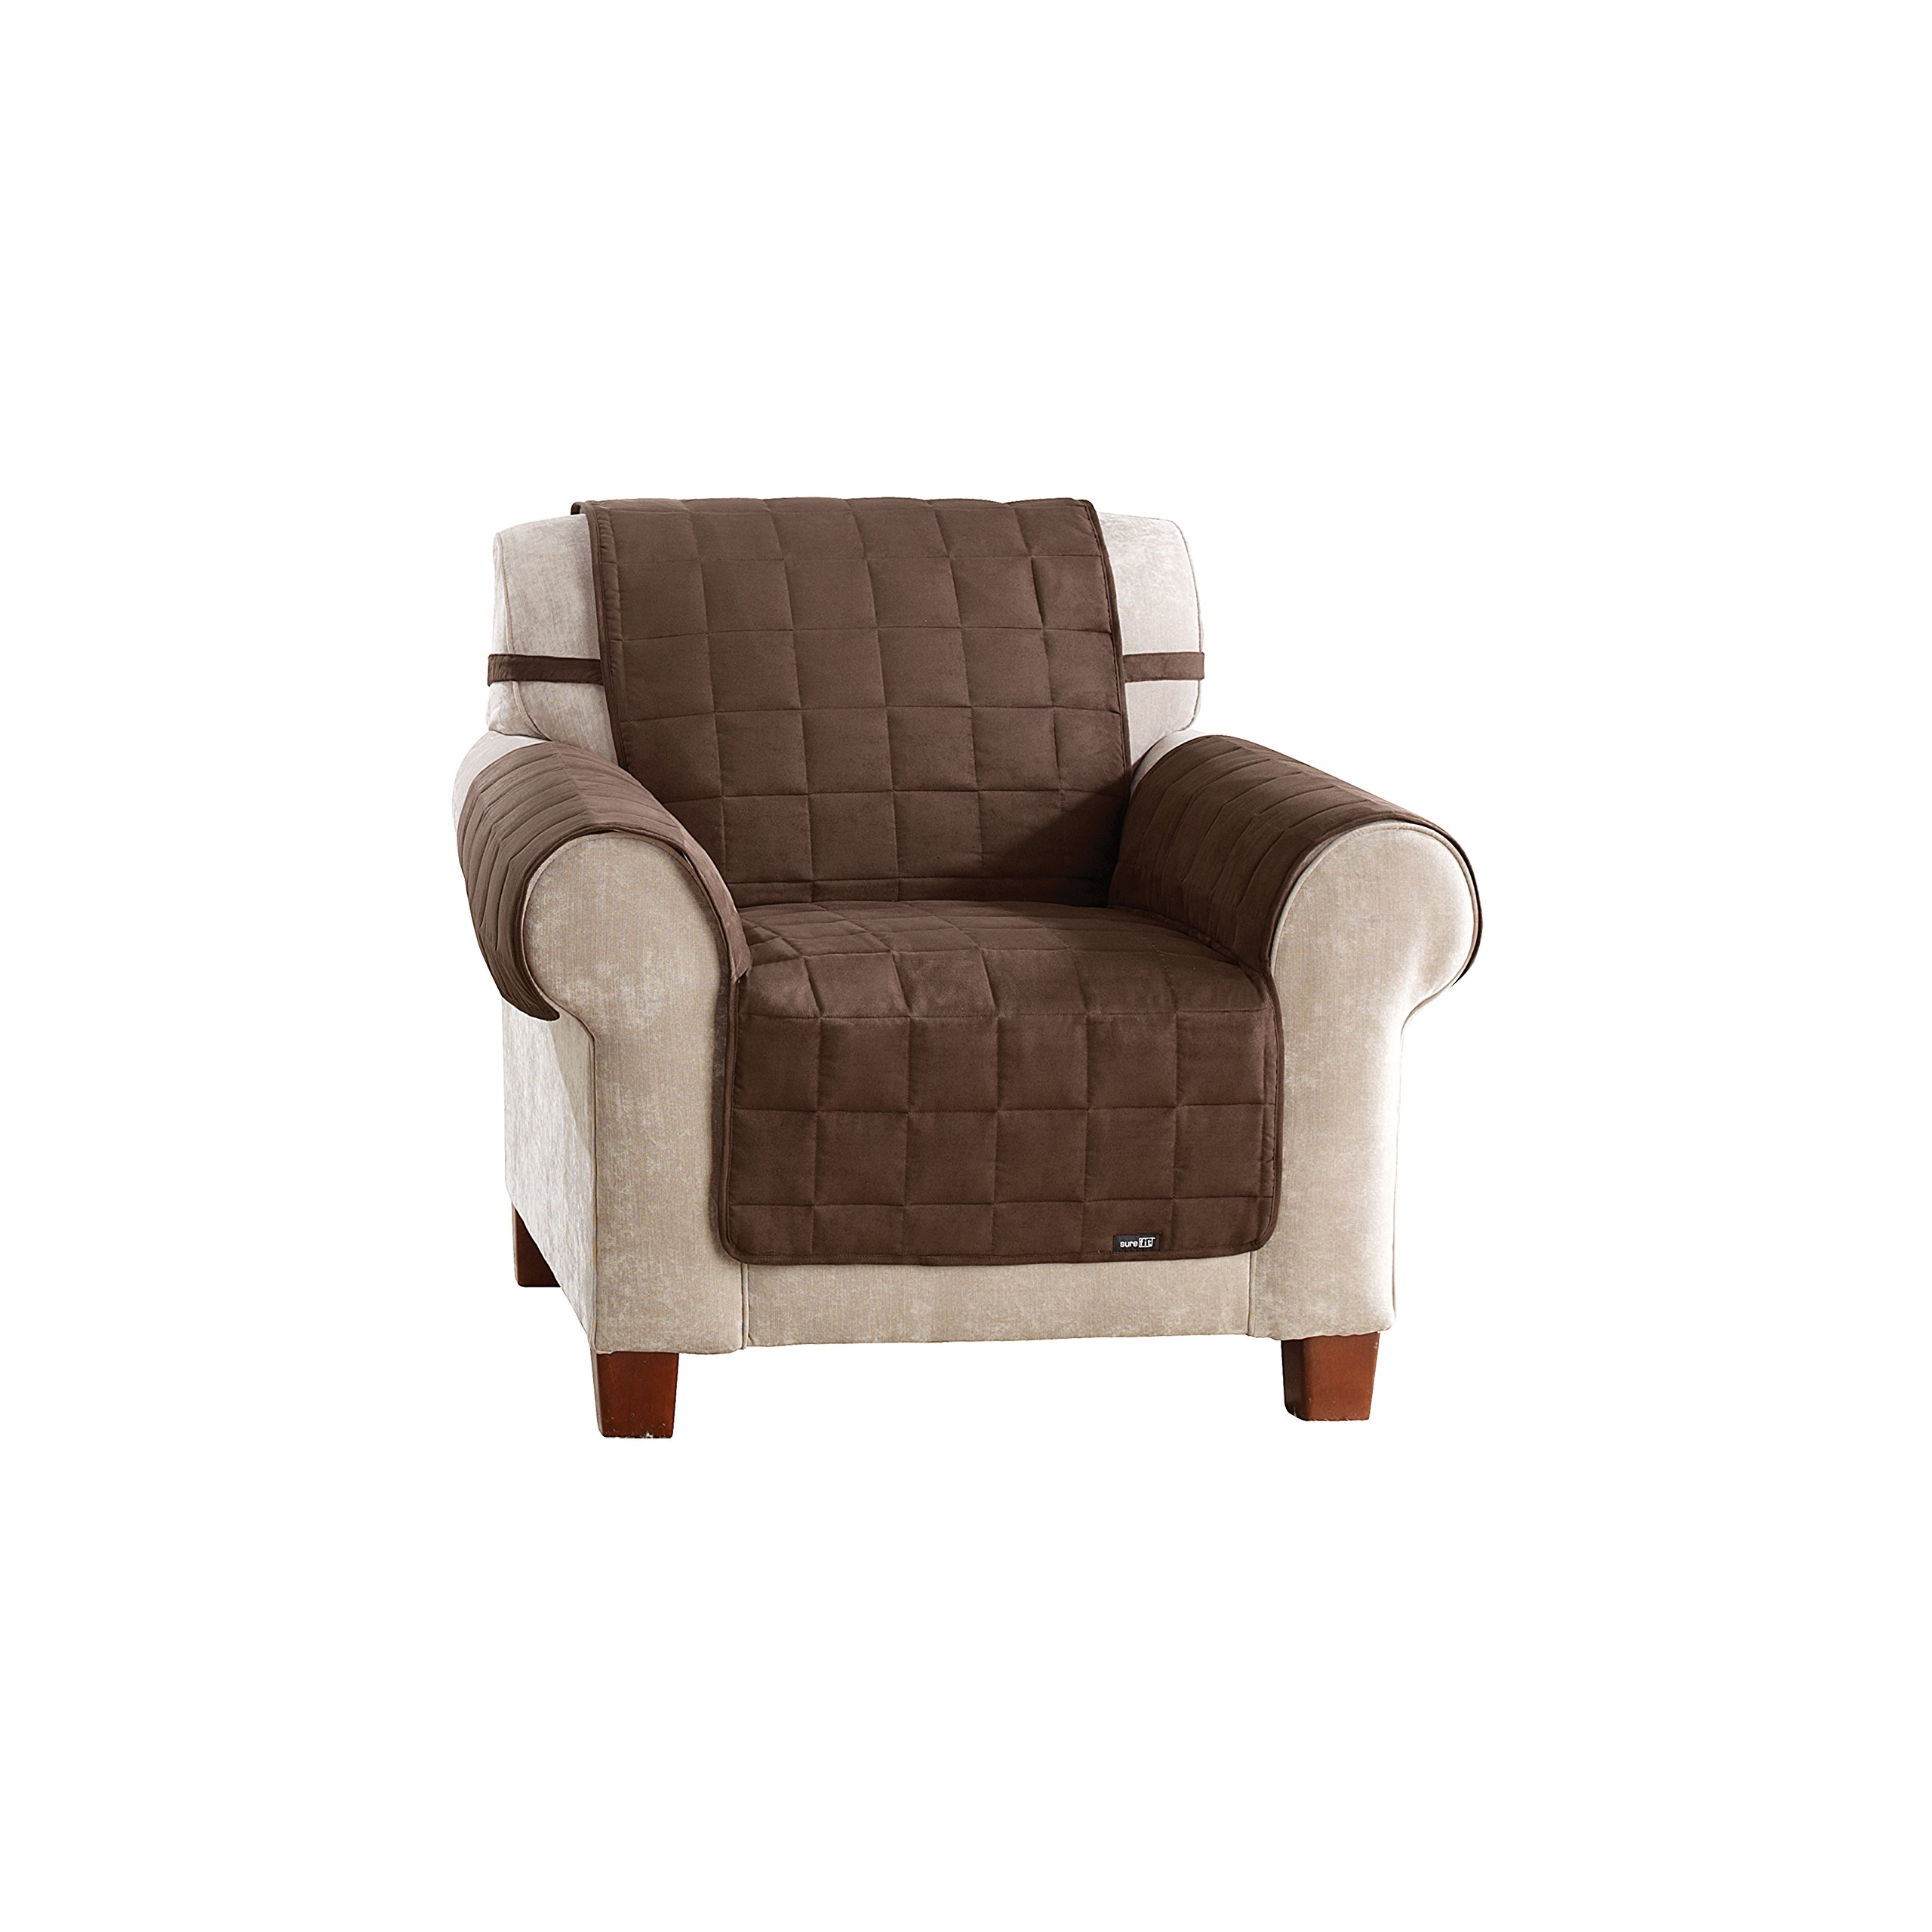 Sure Fit Soft Suede Waterproof - Chair Slipcover  - Chocolate (SF40895)